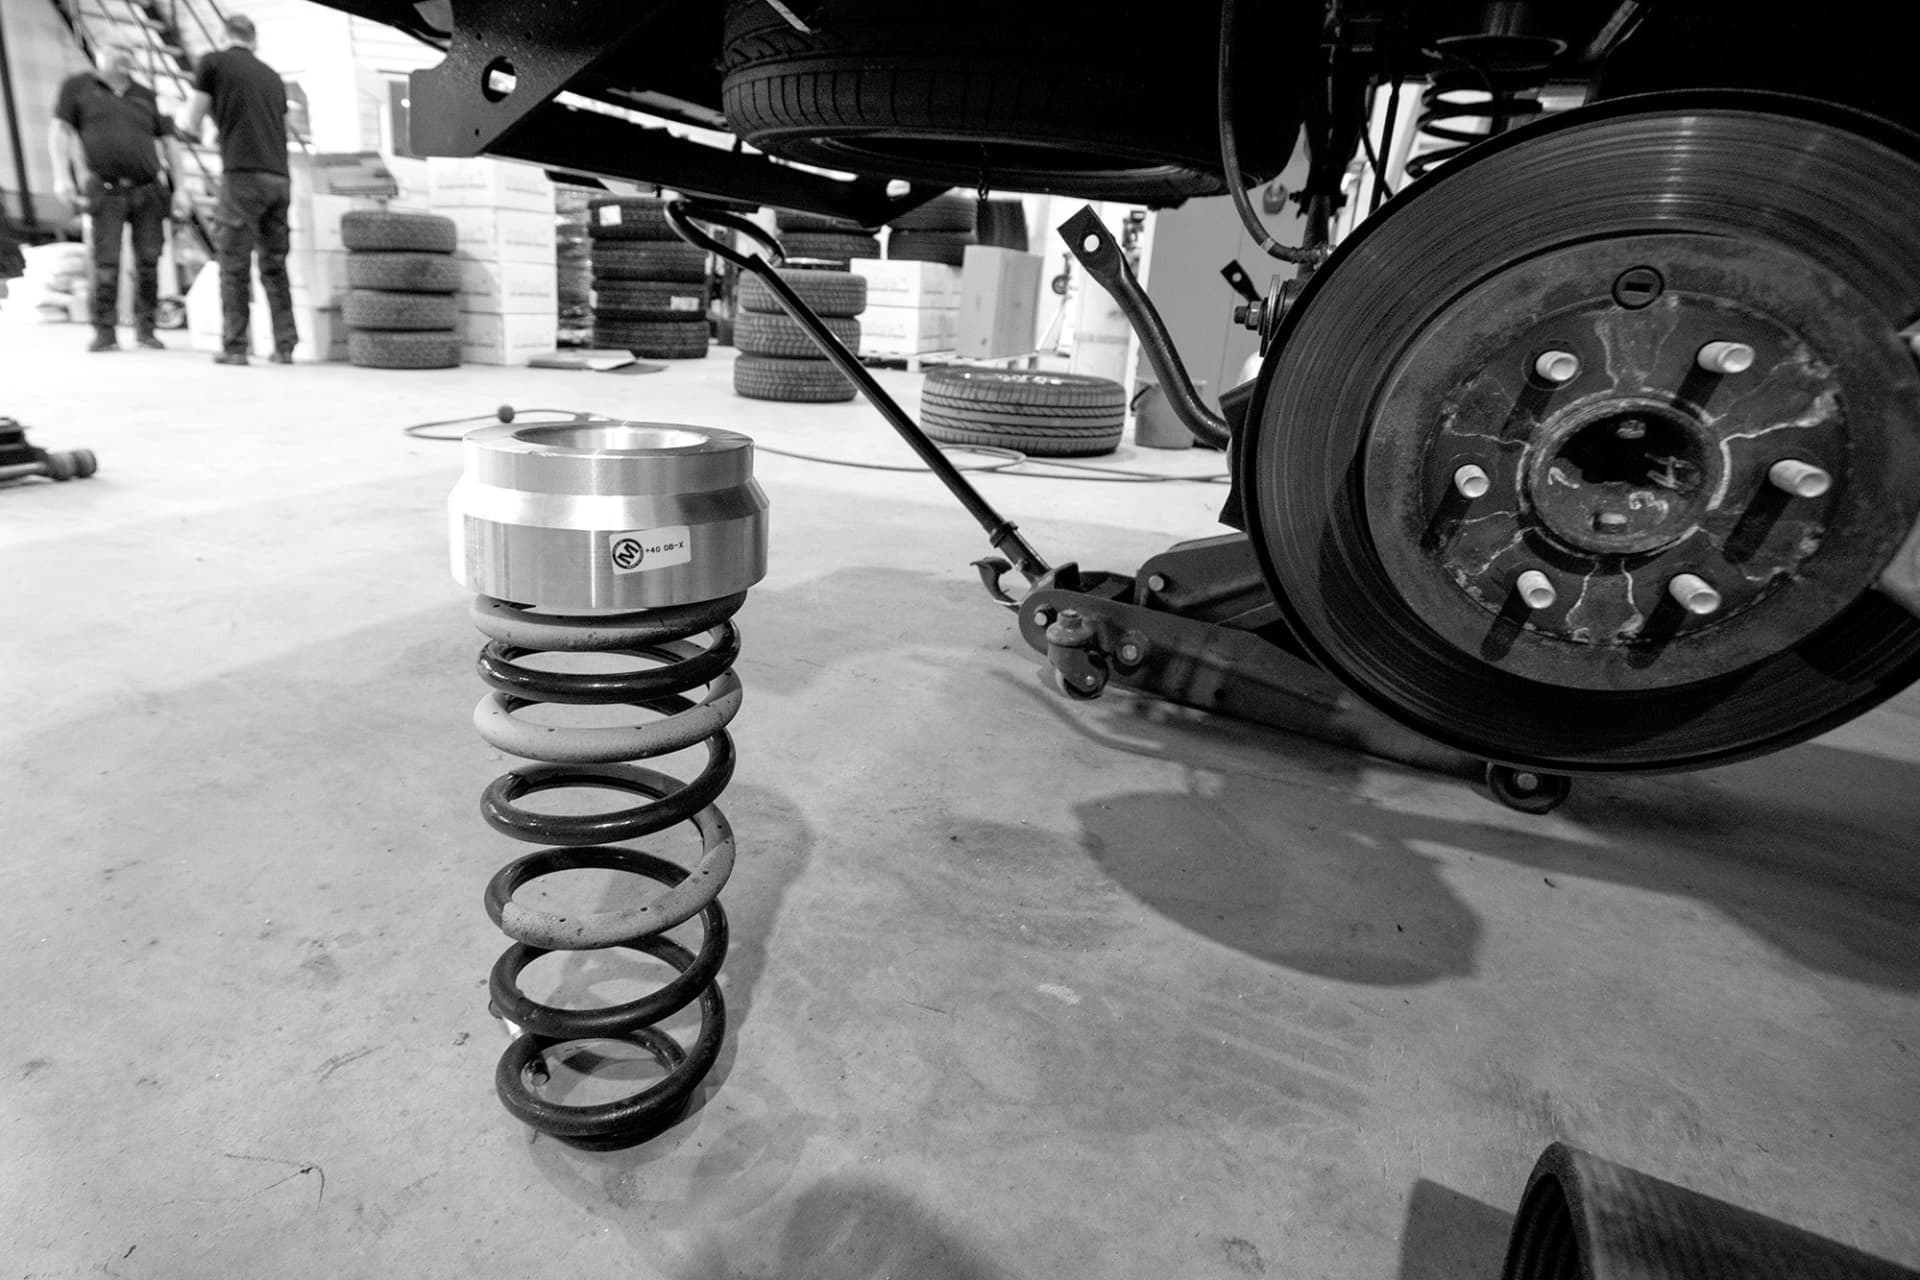 In order to perform the suspension lift, washers are used to extend the springs.